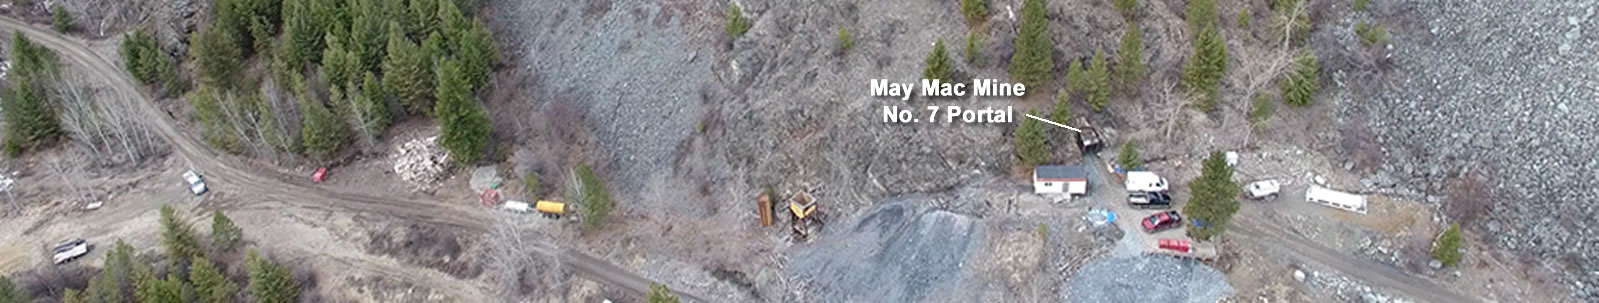 May Mac Mine No. 7 Portal